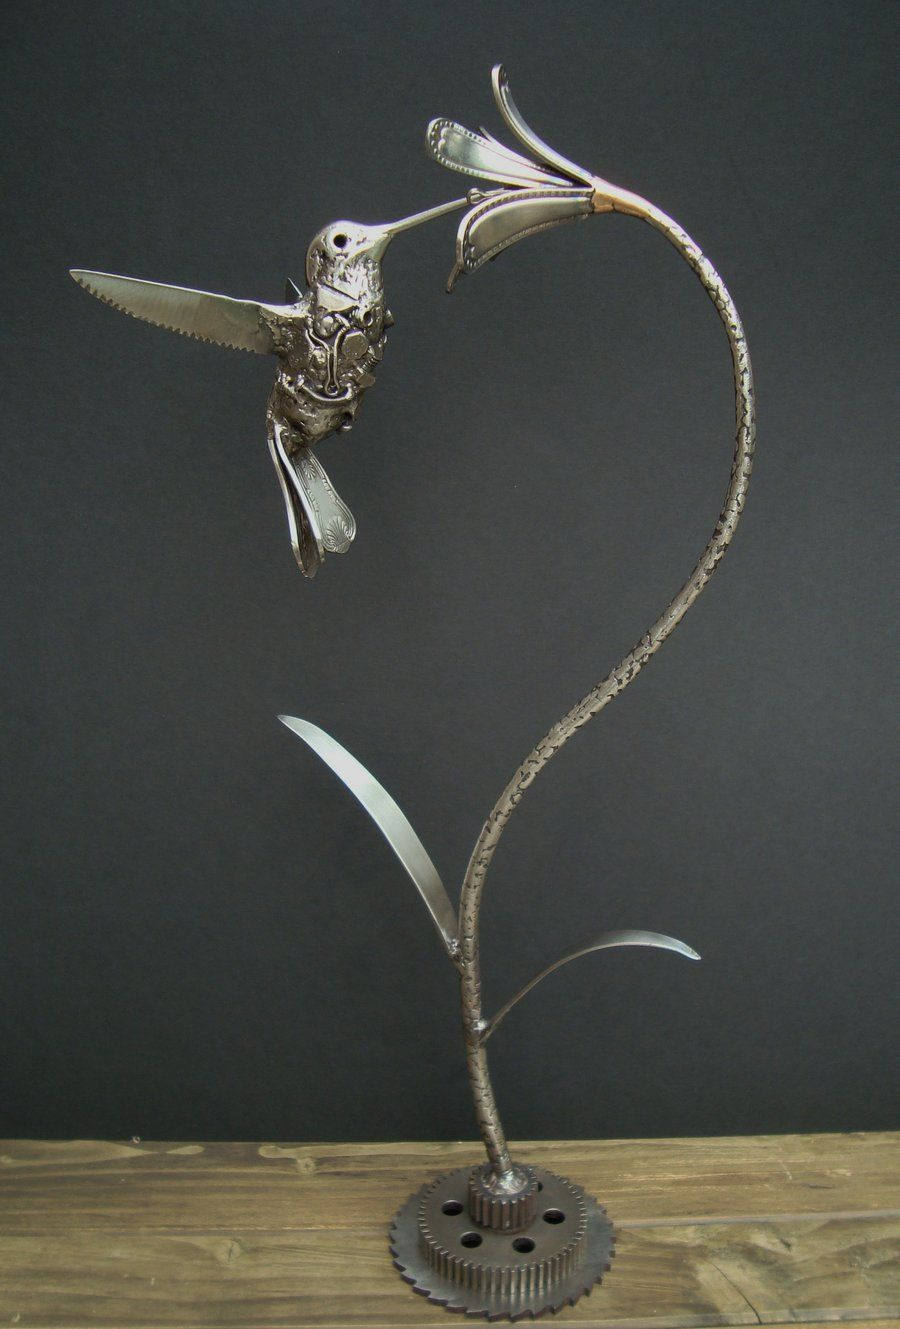 b765980b17 Hummingbird Made from stainless steel knives forks and scrap nuts and bolts  ----